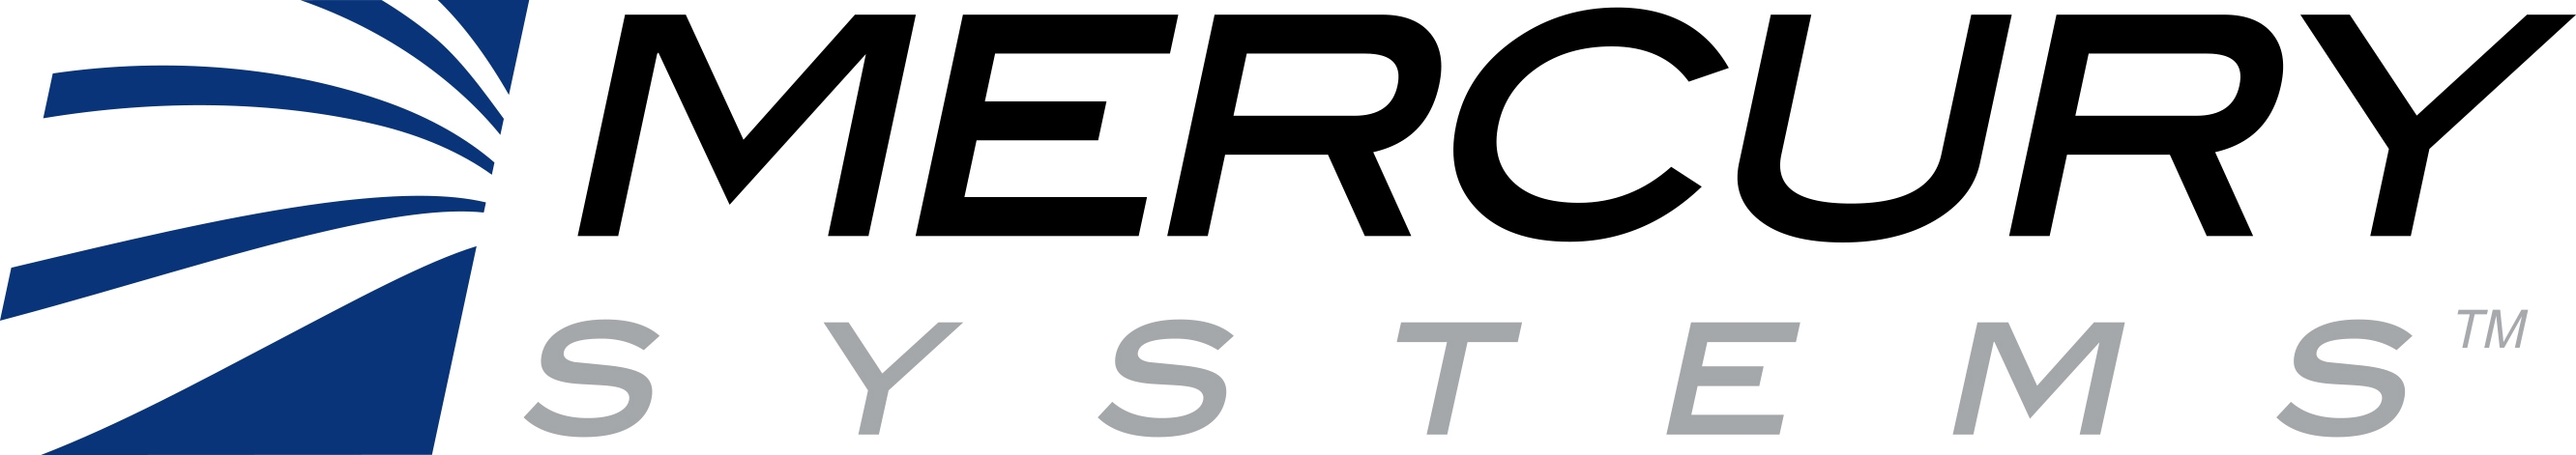 Mercury Systems Receives $4.7M Contract for Advanced Digital Transceivers for Electronic Warfare Application